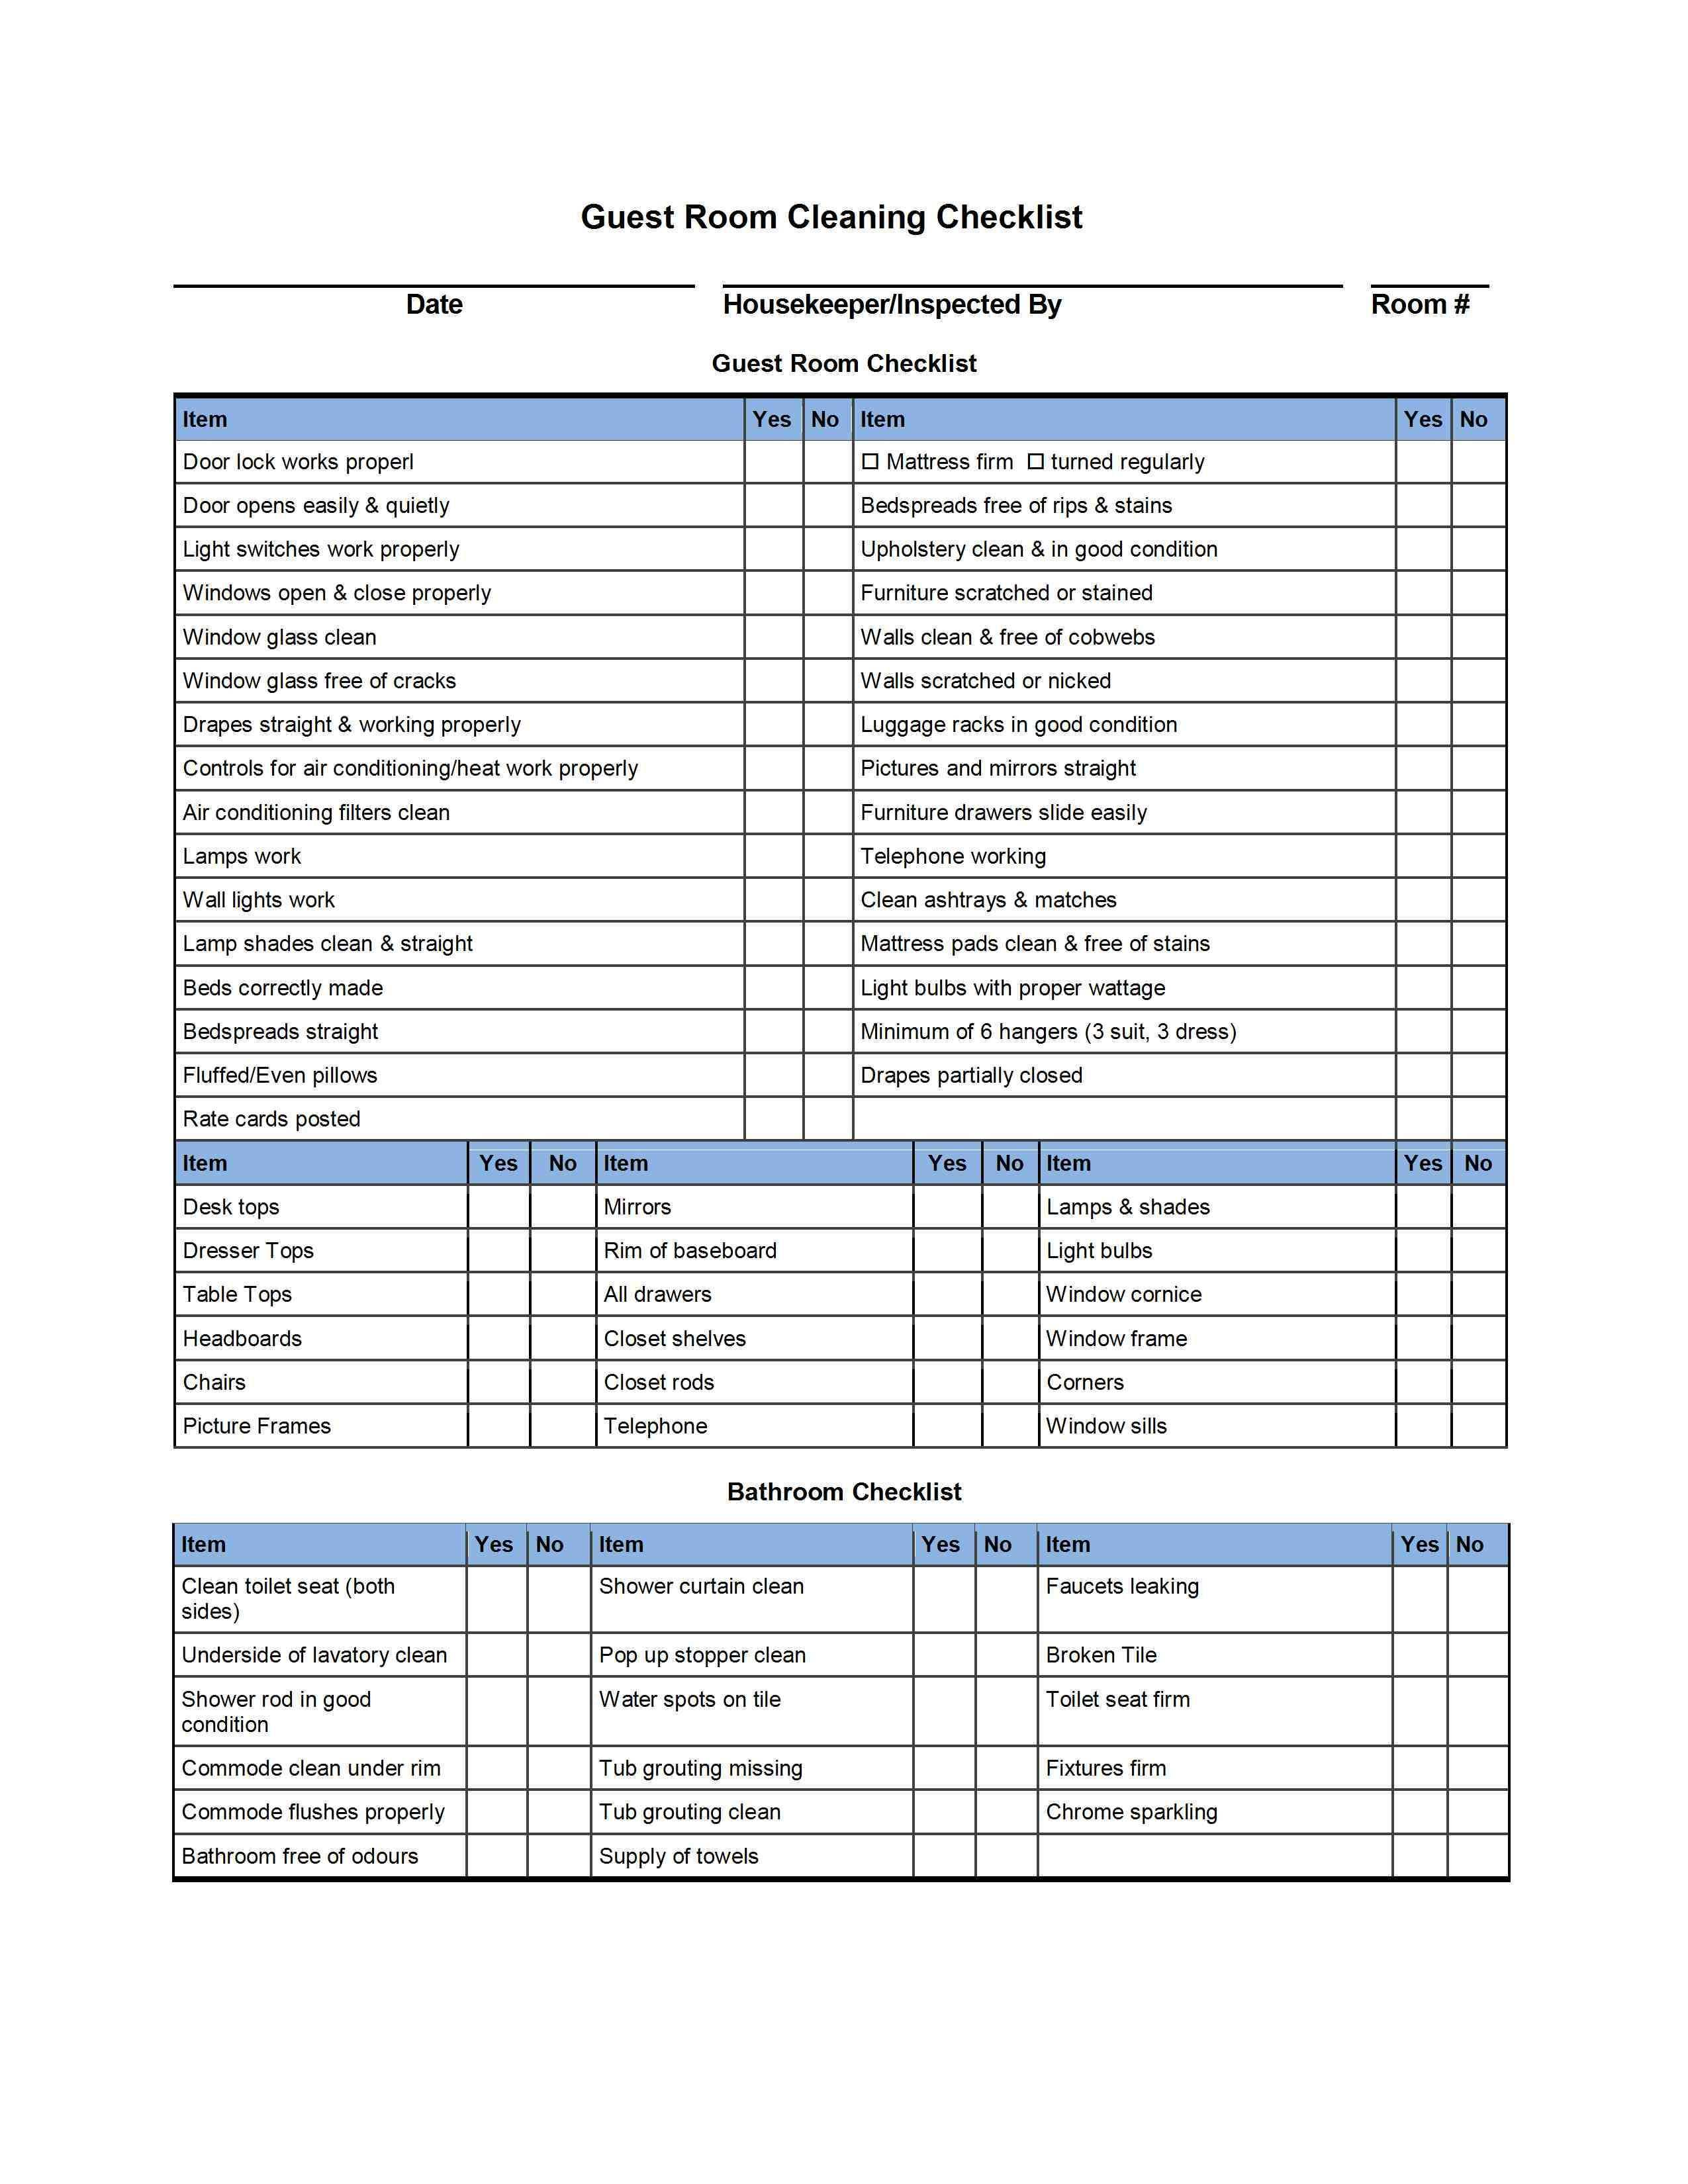 Hotel Room Cleaning Checklist Templates External House Cleaning Brisbane Clean Room Checklist Housekeeper Checklist Cleaning Checklist Template